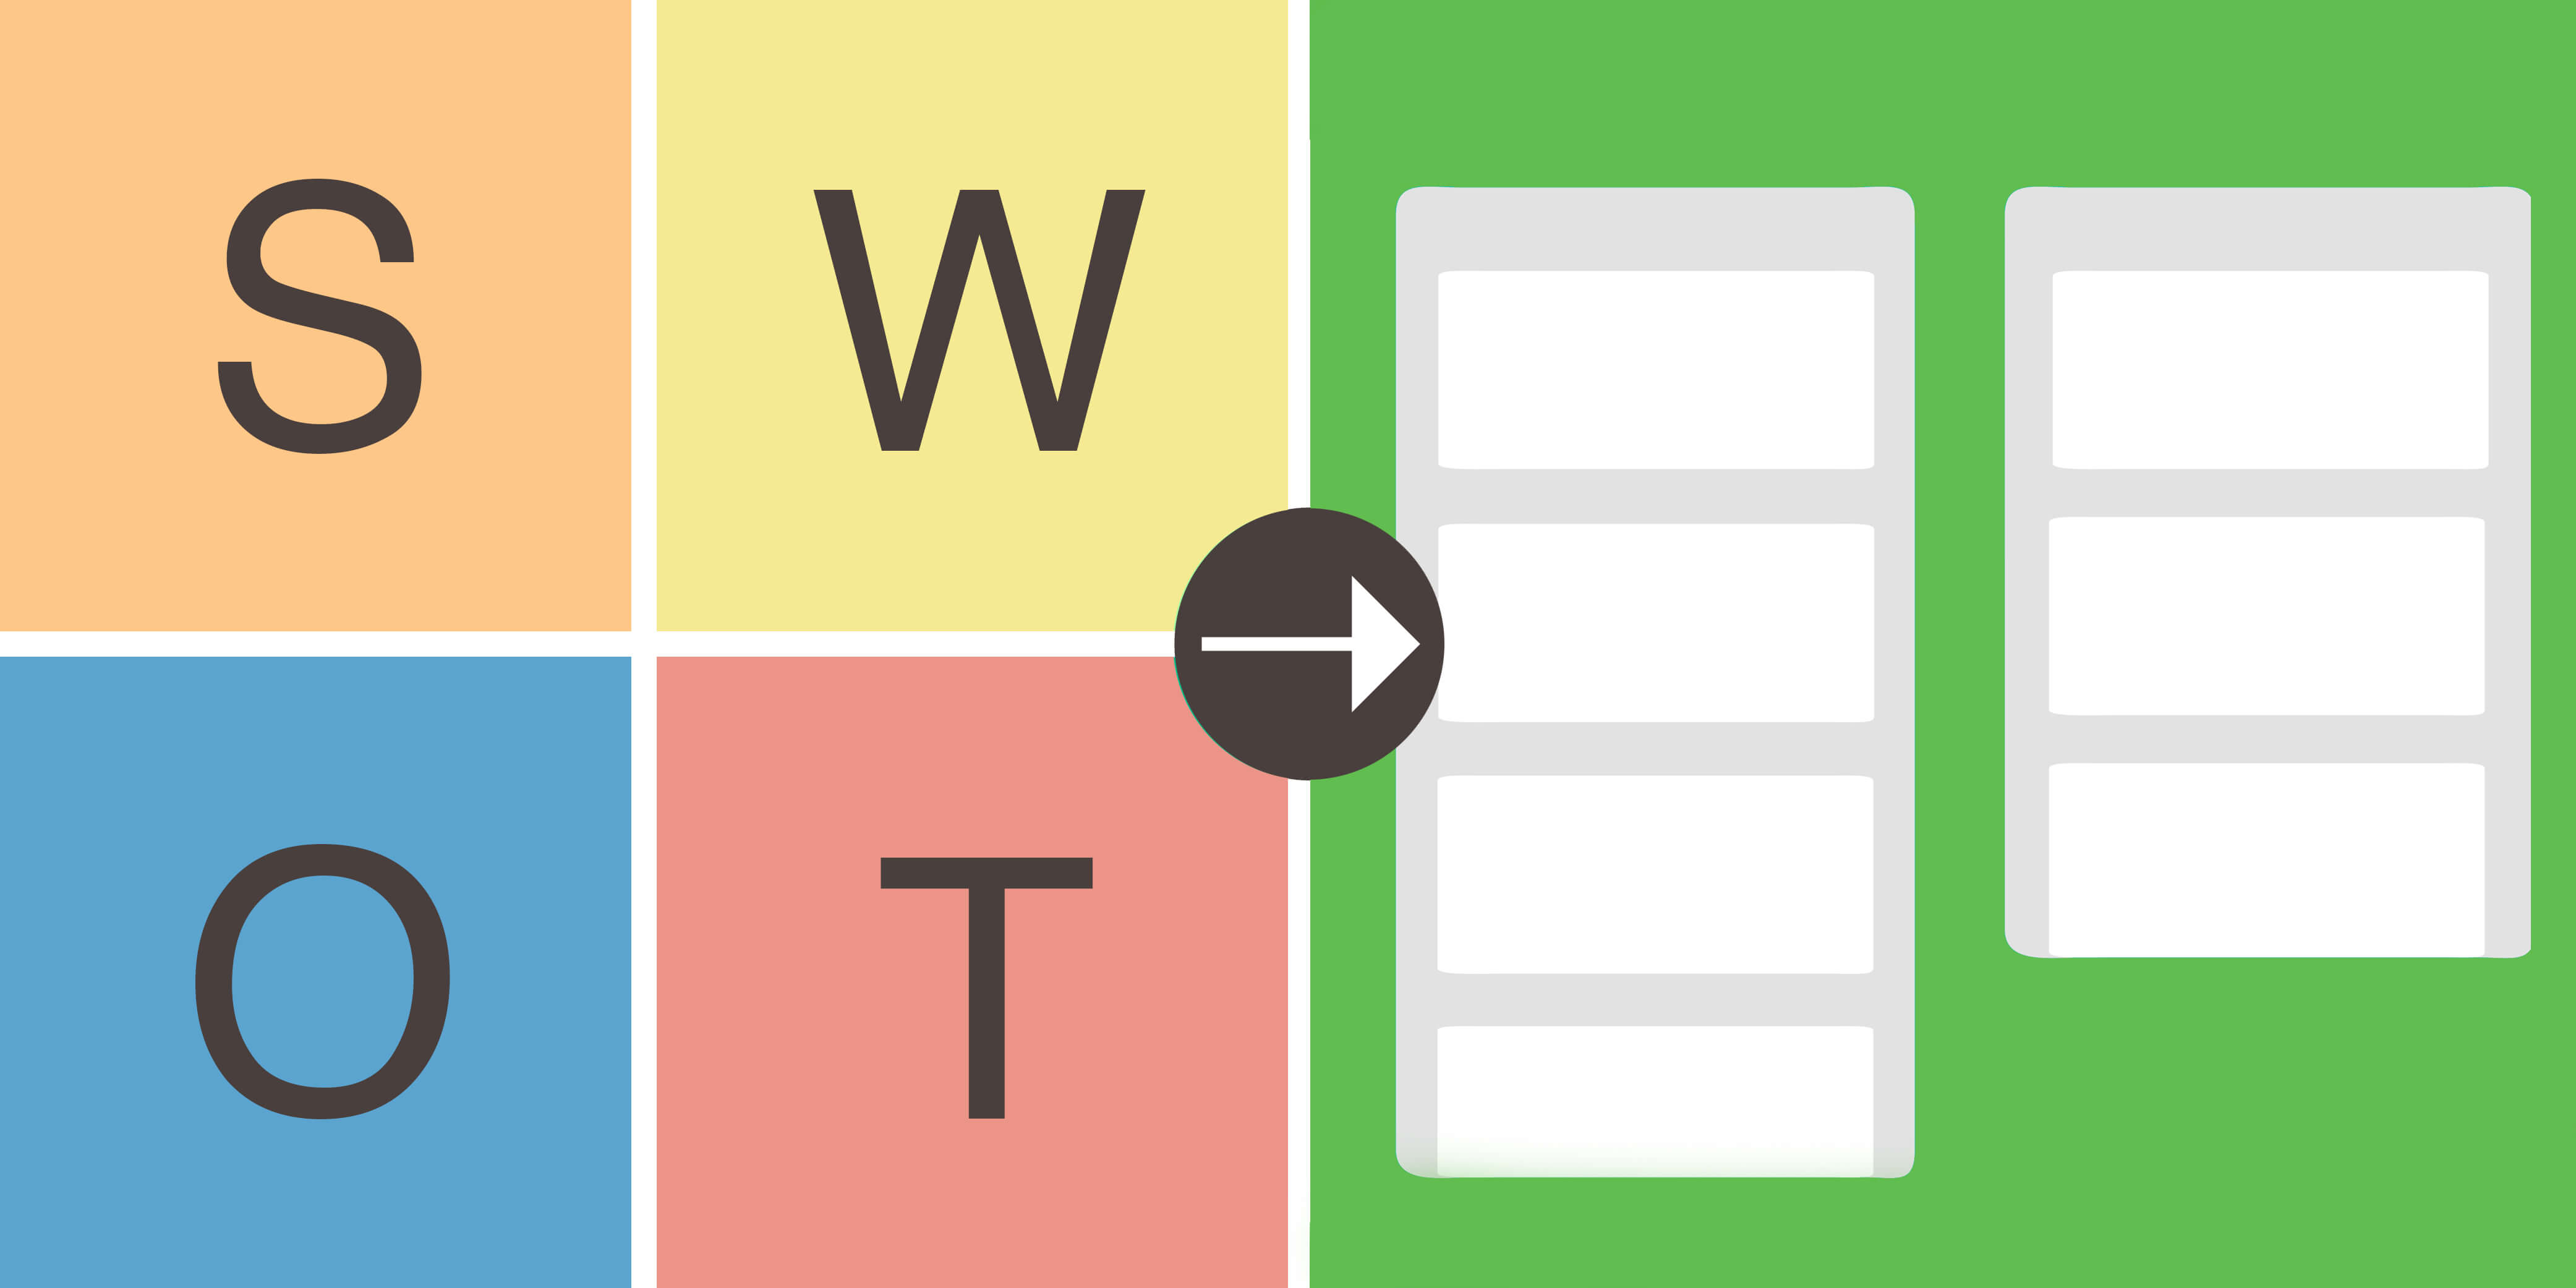 matriz swot no trello